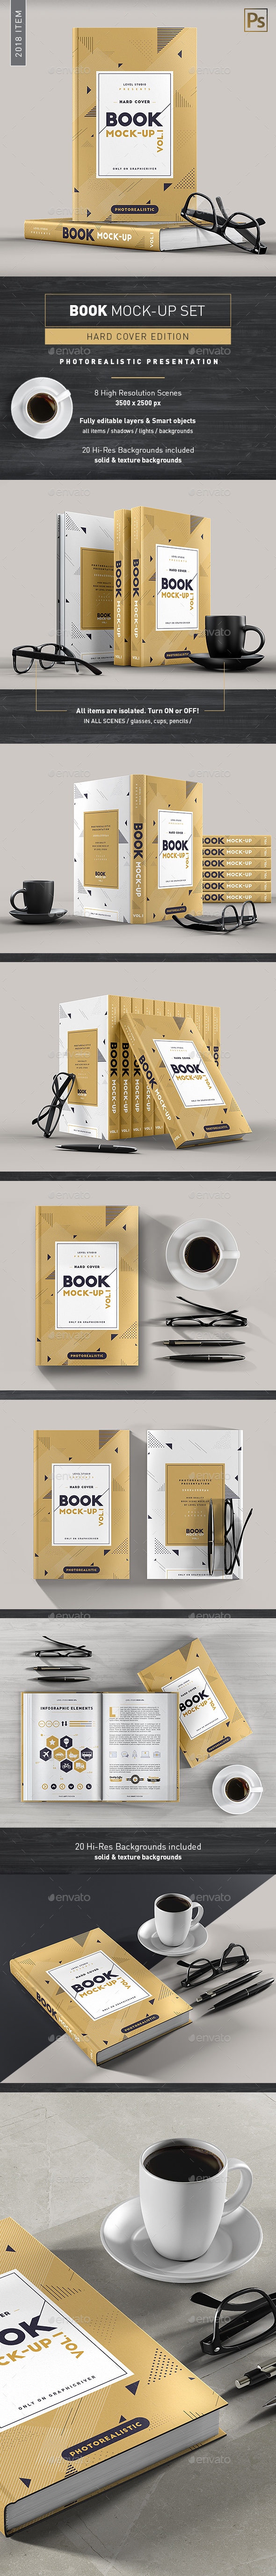 Book Mock-Up Set 1 (Hardcover) - 2018 Edition - Miscellaneous Print